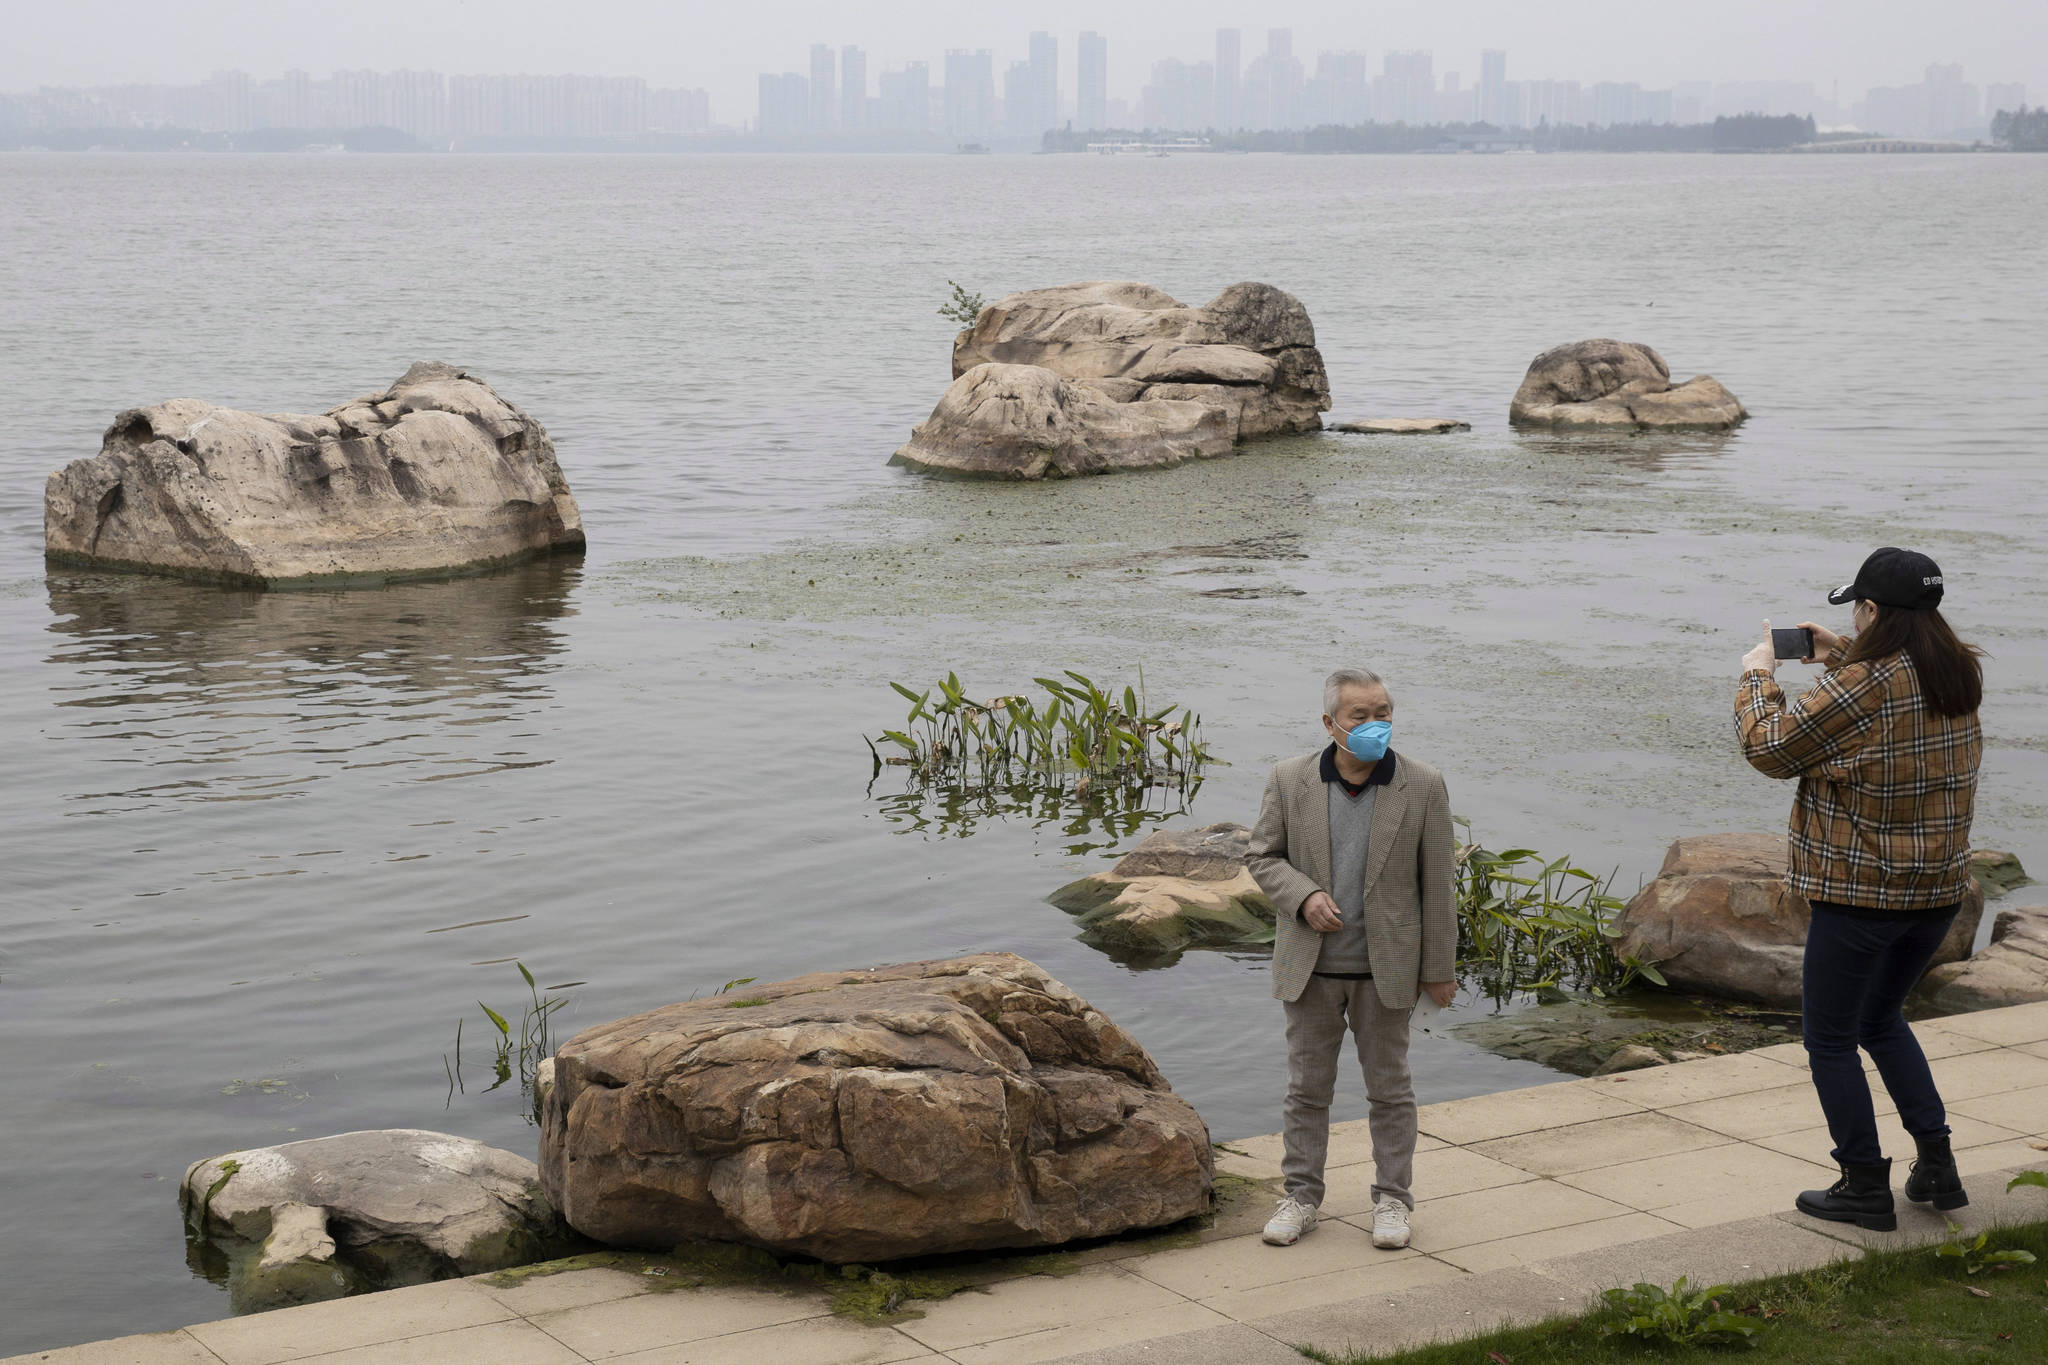 Visitors wearing mask against the coronavirus enjoy a quiet day at the East Lake park in Wuhan in central China's Hubei province on Thursday, April 2, 2020. For most people, the new coronavirus causes mild or moderate symptoms, such as fever and cough, that clear up in two to three weeks. For some, especially older adults and people with existing health problems, it can cause more severe illness, including pneumonia, and death. (AP Photo/Ng Han Guan)